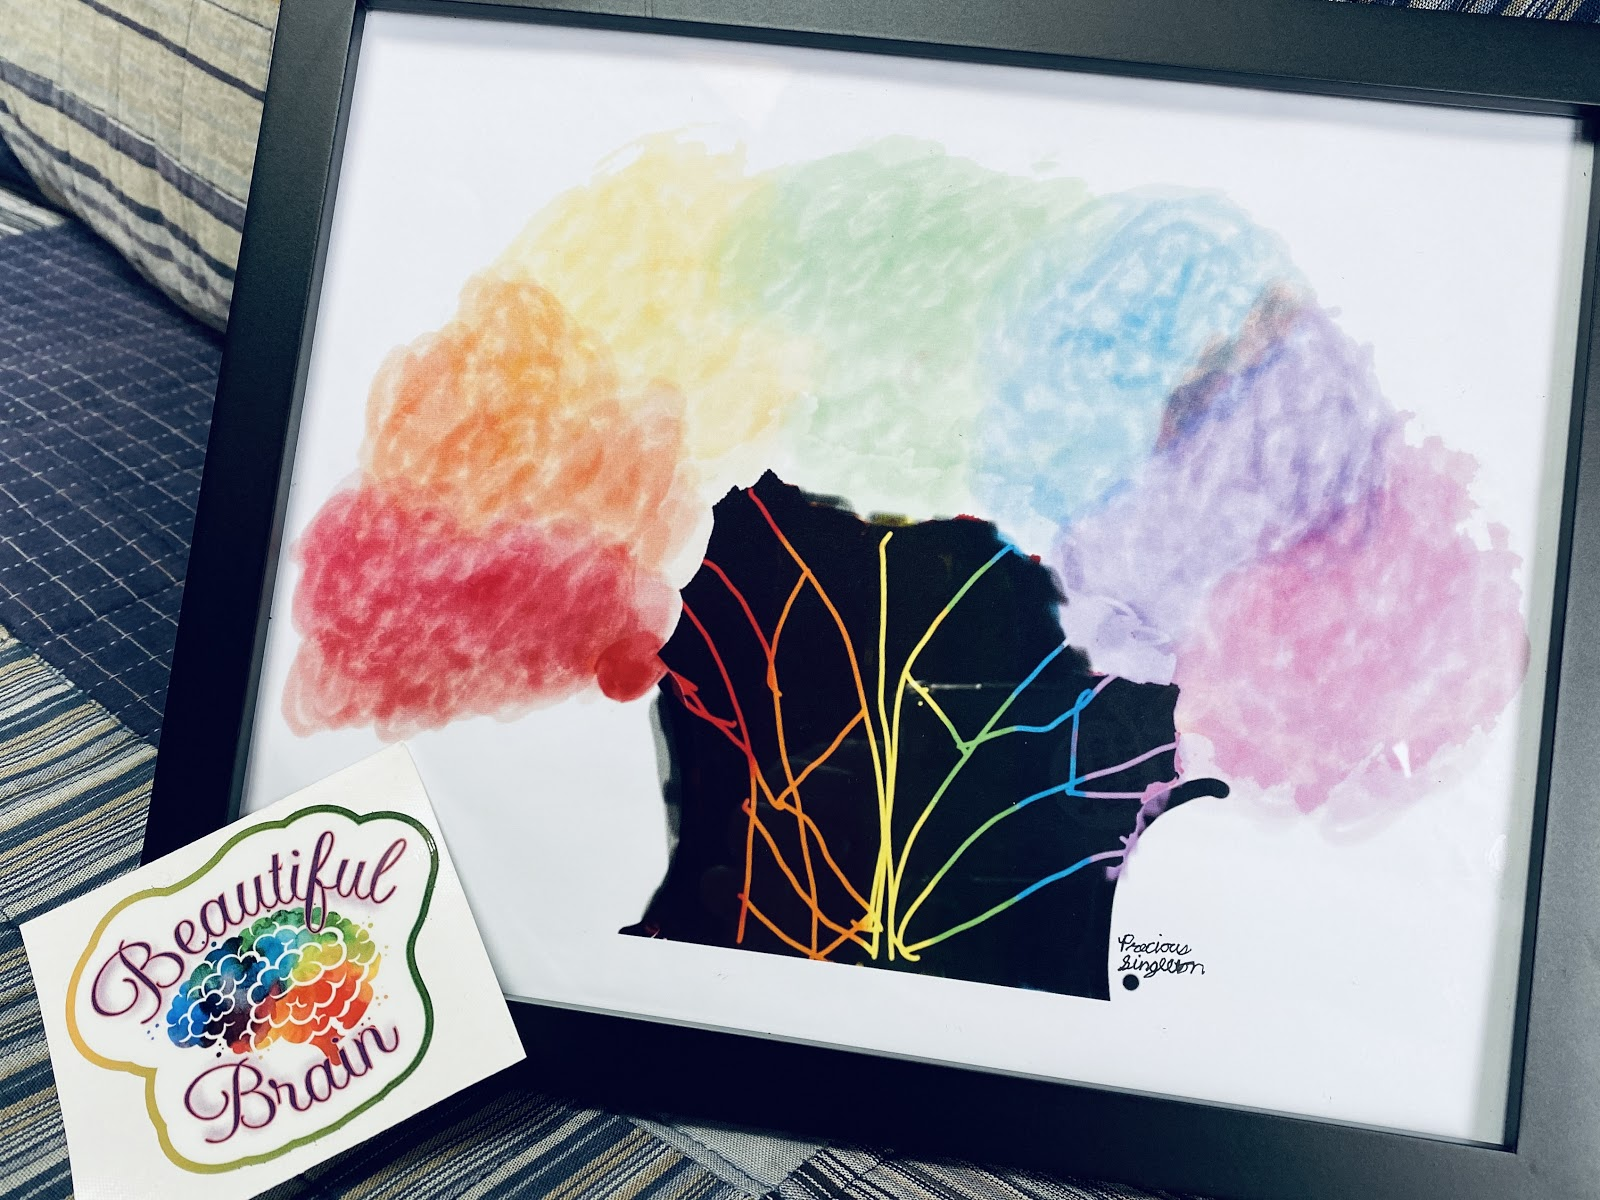 Precious's artwork of colorful tree